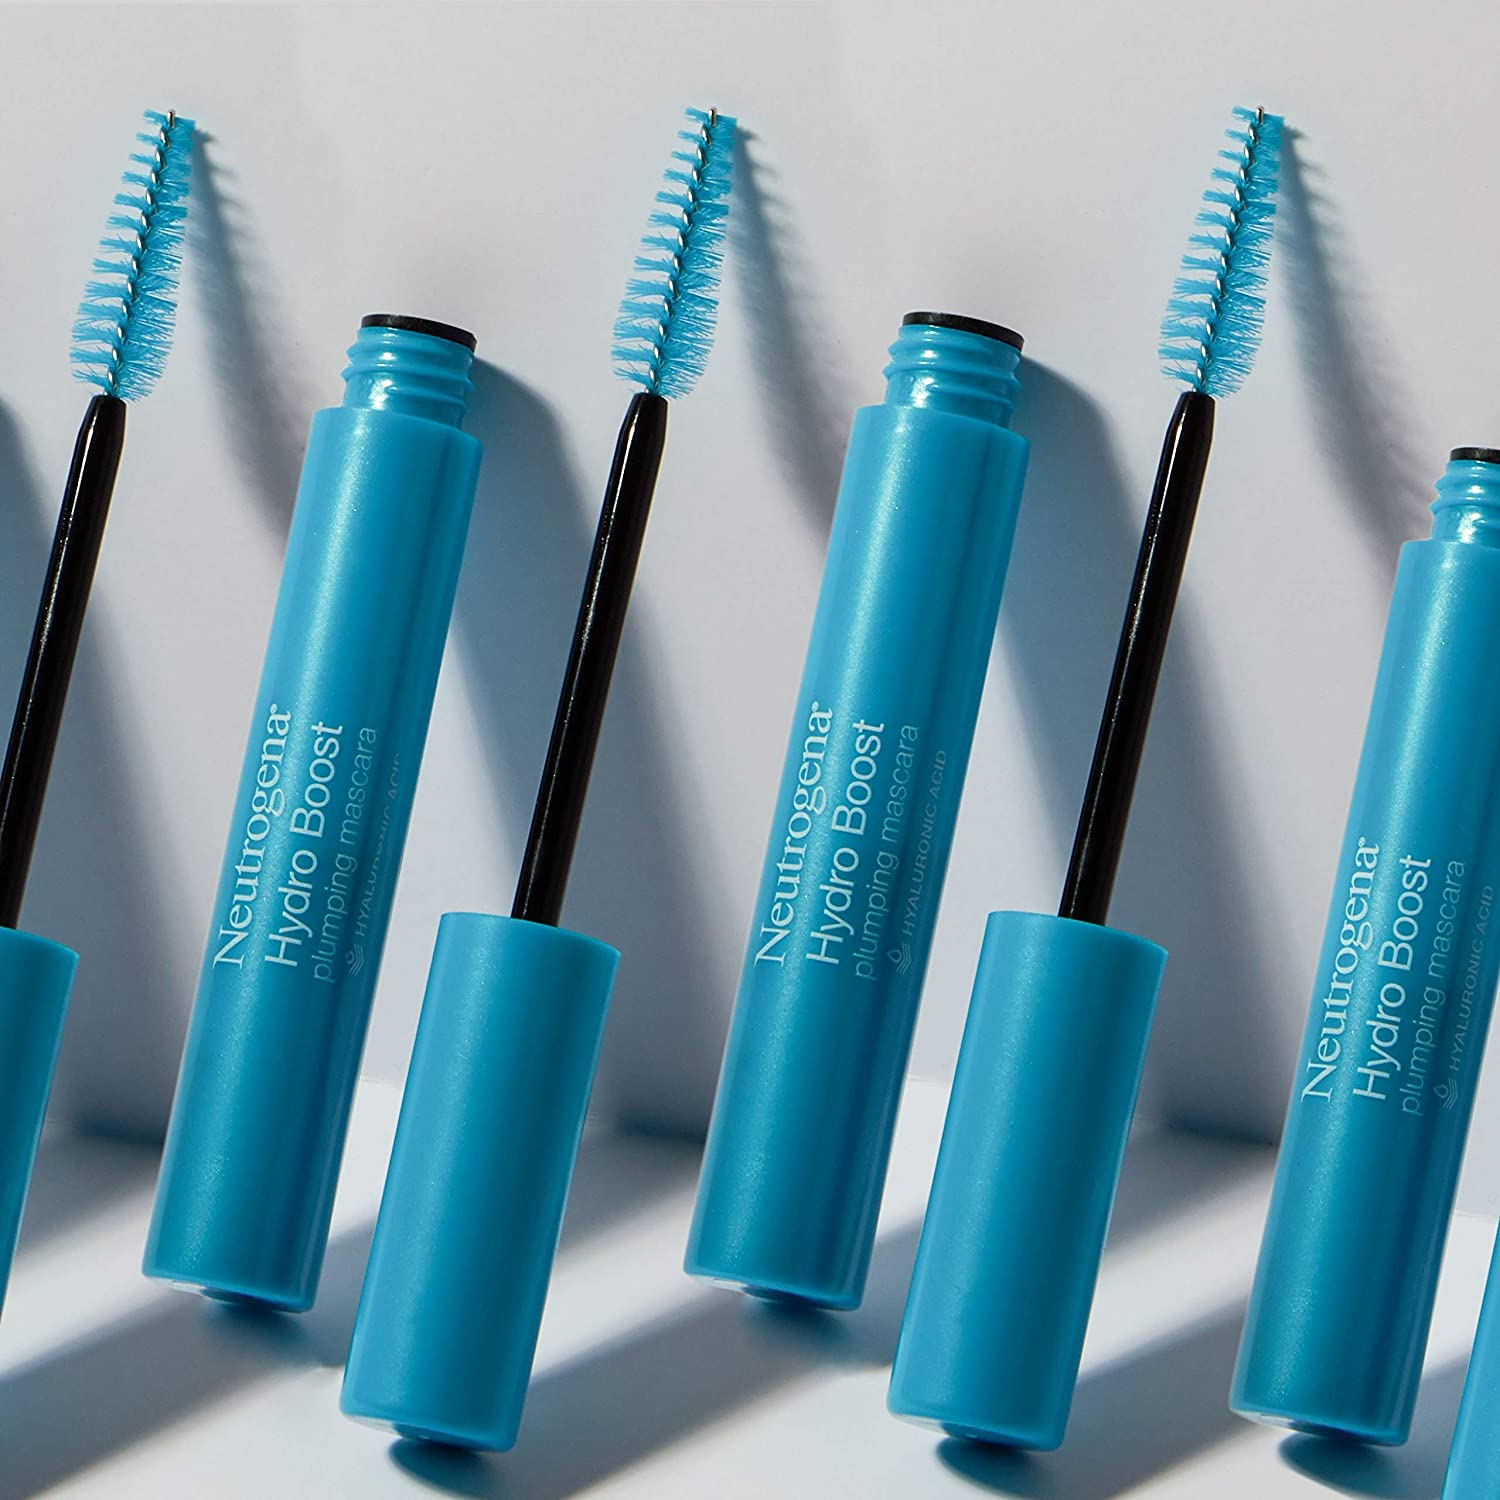 NEUTROGENA - Hydro Boost Plumping Waterproof Mascara, Black - 0.21 ...